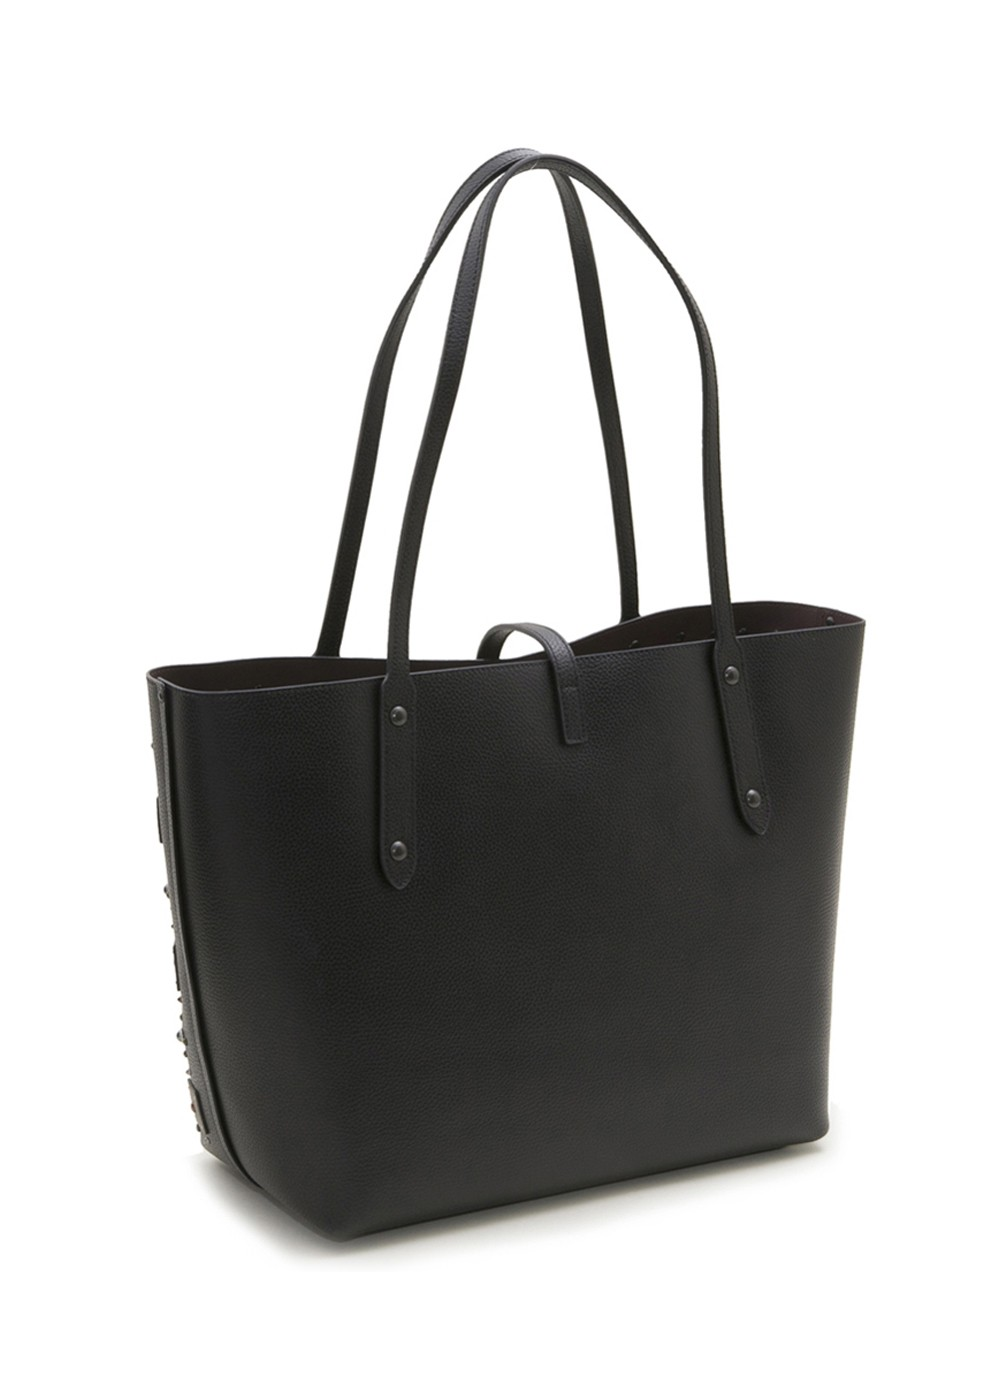 【最大50%OFF】MARKET TOTE|BLACK|トートバッグ|COACH